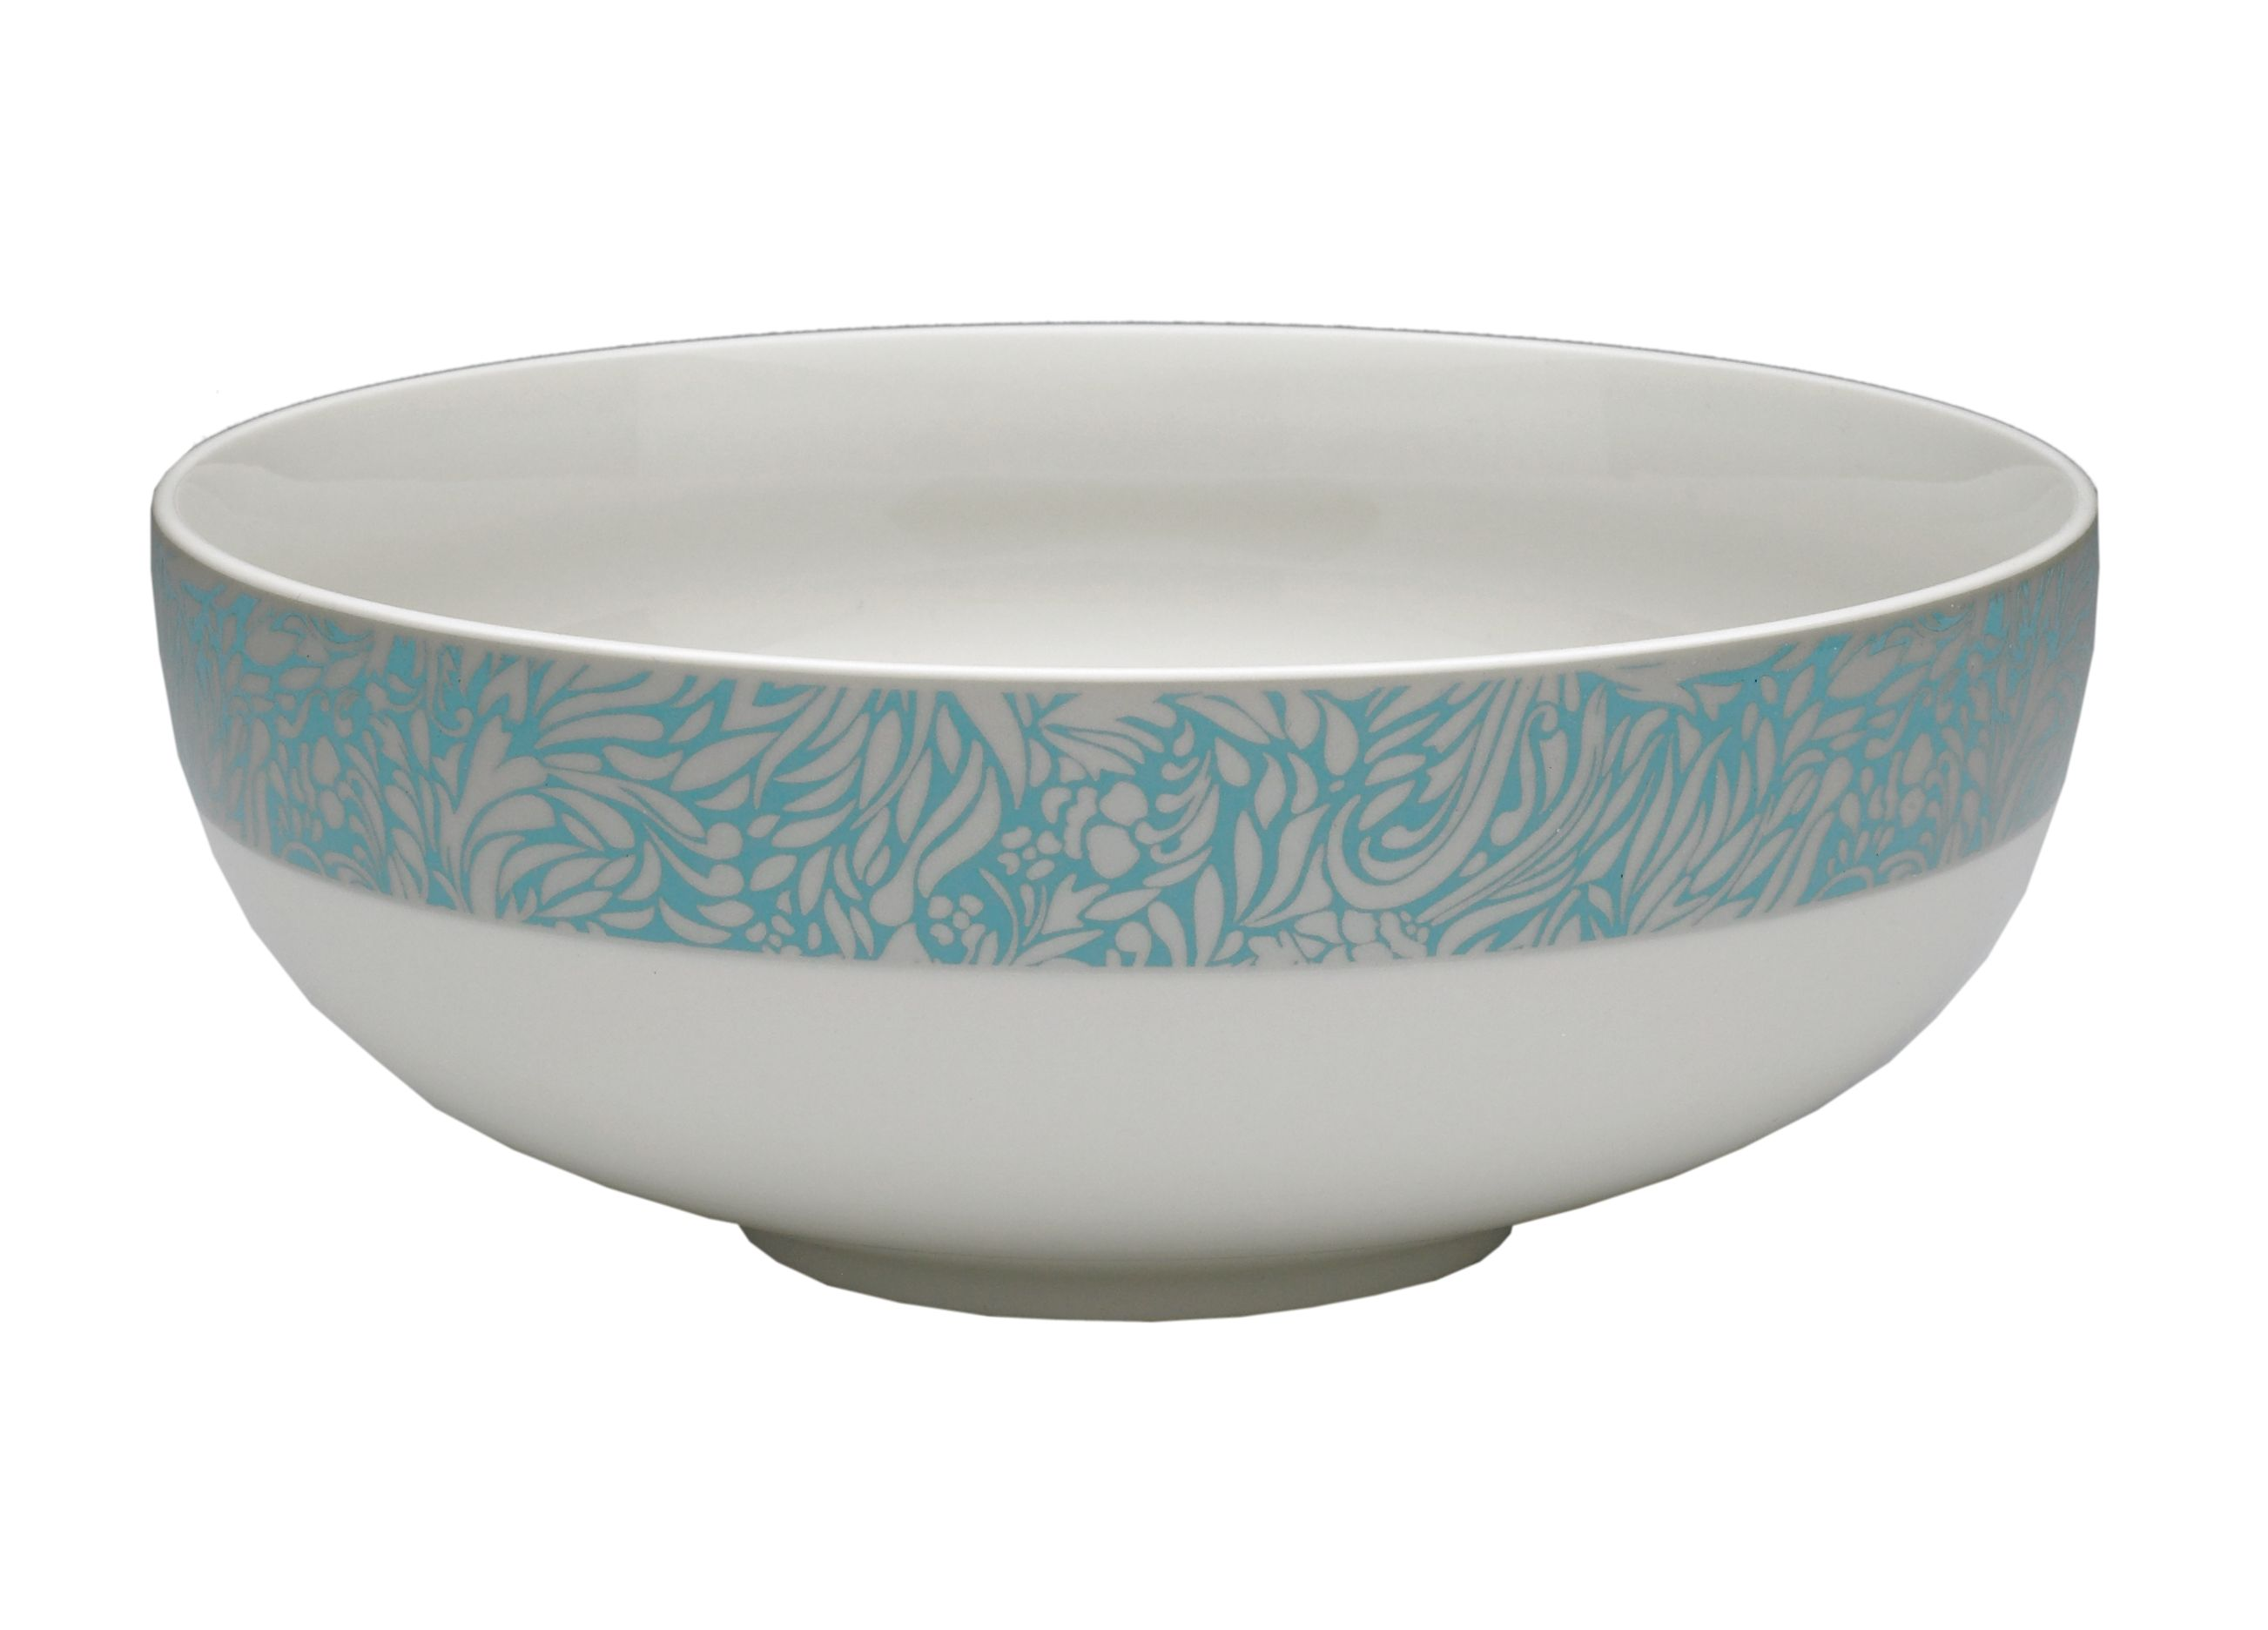 Monsoon Lucille teal serving bowl